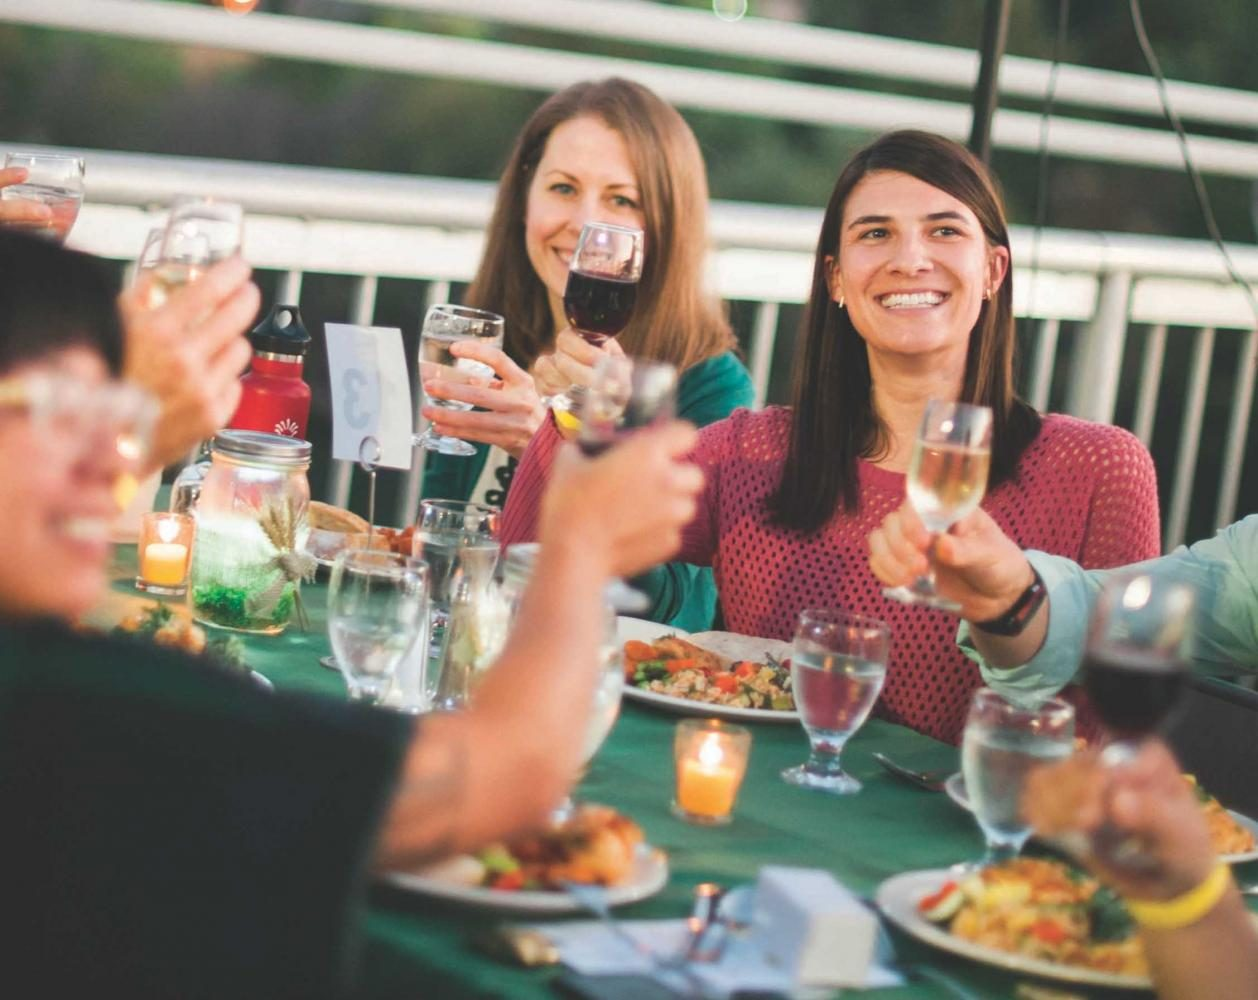 Diners raise their glasses during the first Farm-to-Fork dinner on the Guy West Bridge on Sept. 14, 2016. This years dinner will be held on Sept. 13.